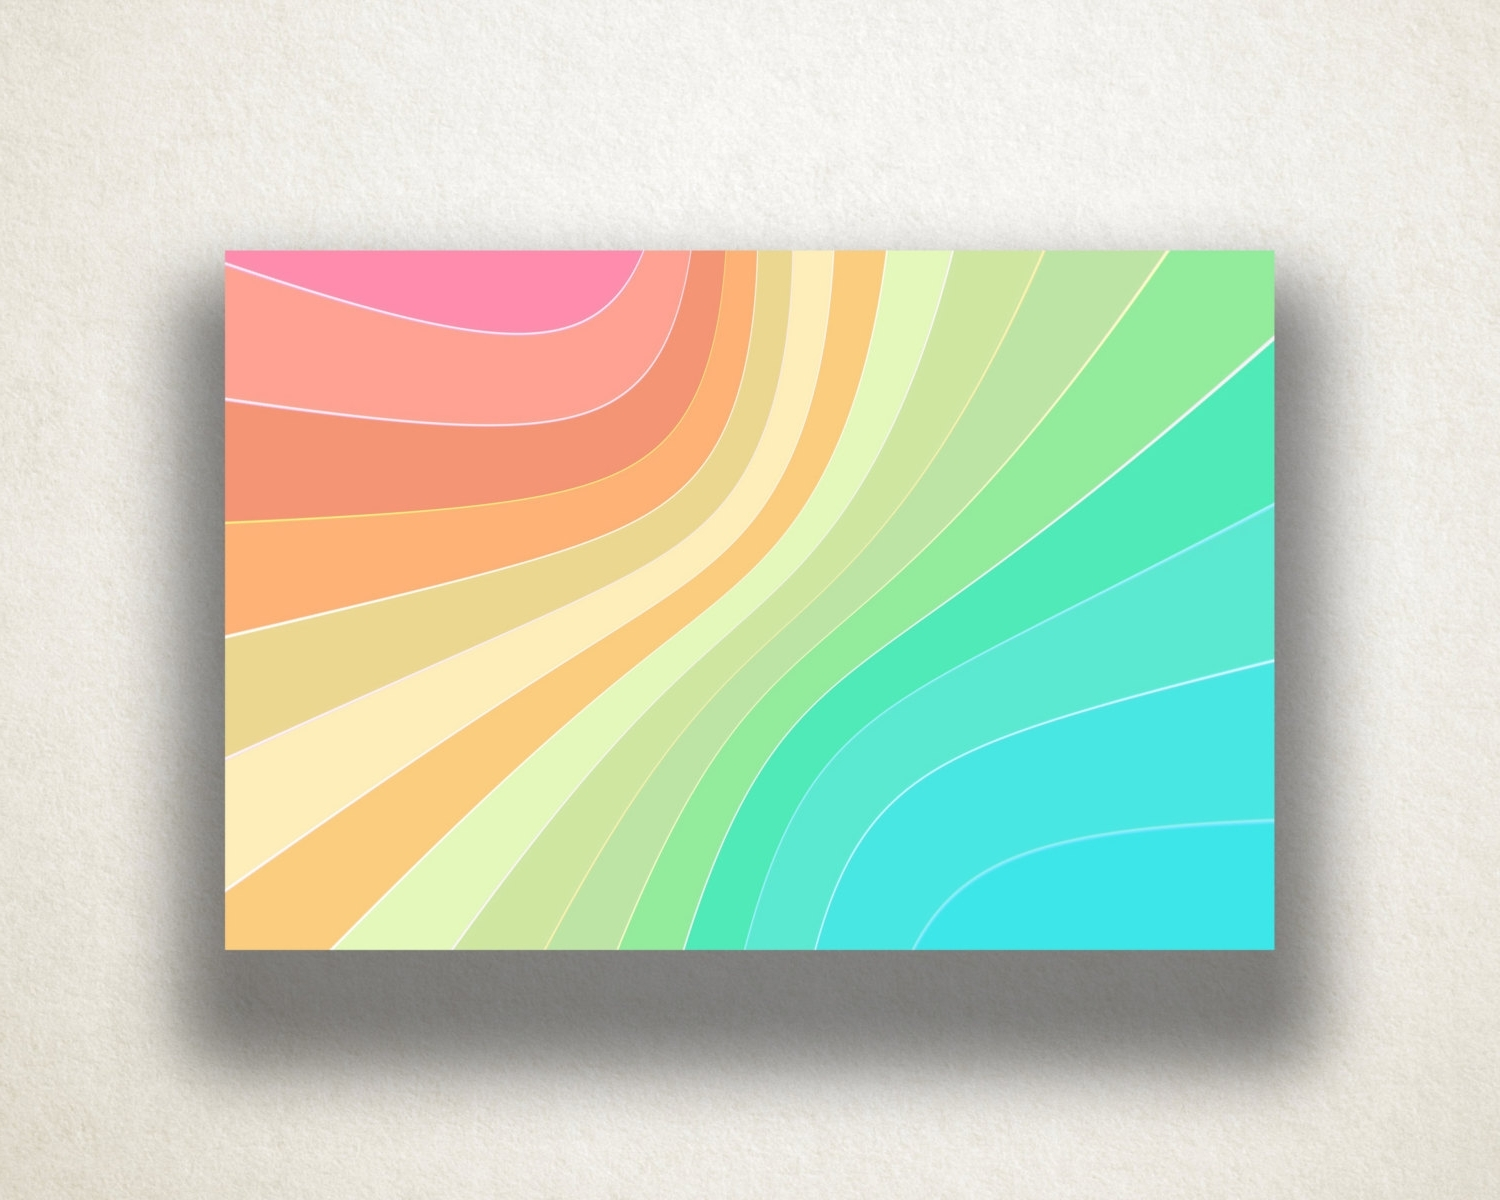 Pastel Abstract Wall Art Regarding Newest Abstract Rainbow Design Canvas Art Print, Gradient Pastel Wall Art (View 10 of 15)